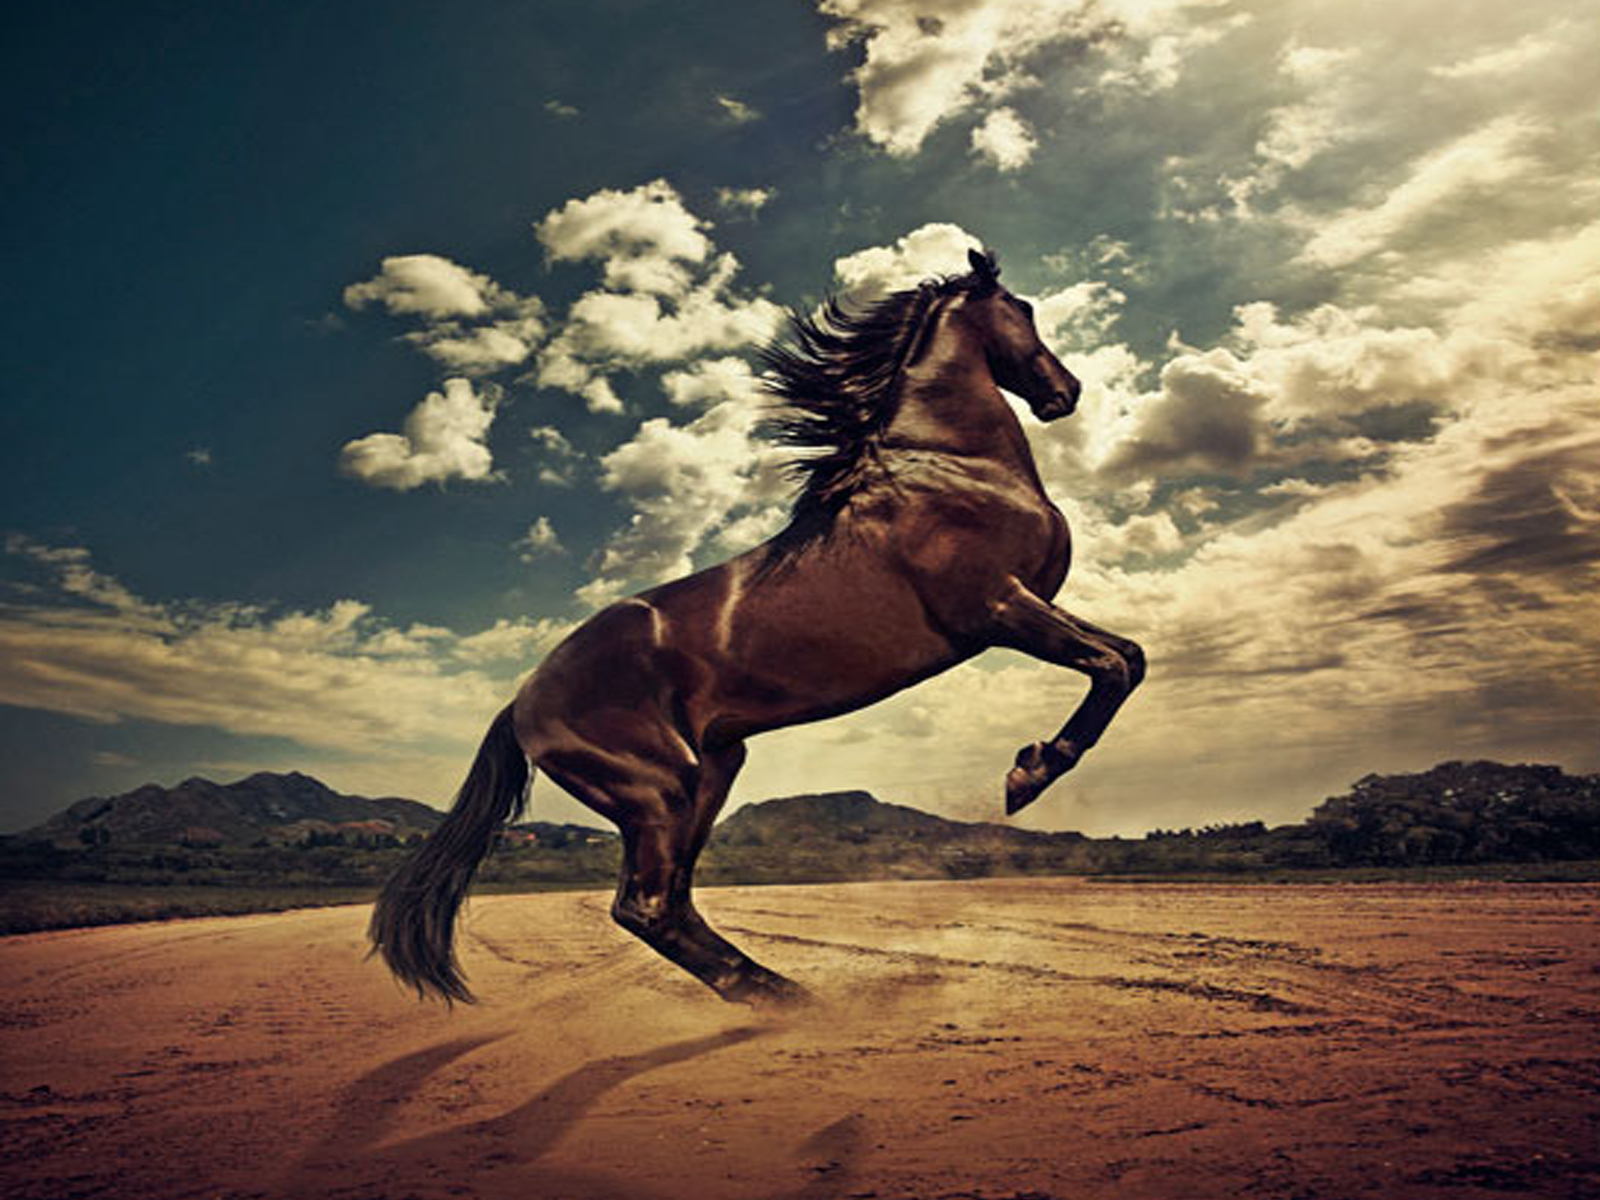 Must see   Wallpaper Horse Iphone - horse-wallpaper%252B(3)  Graphic_48259.jpg